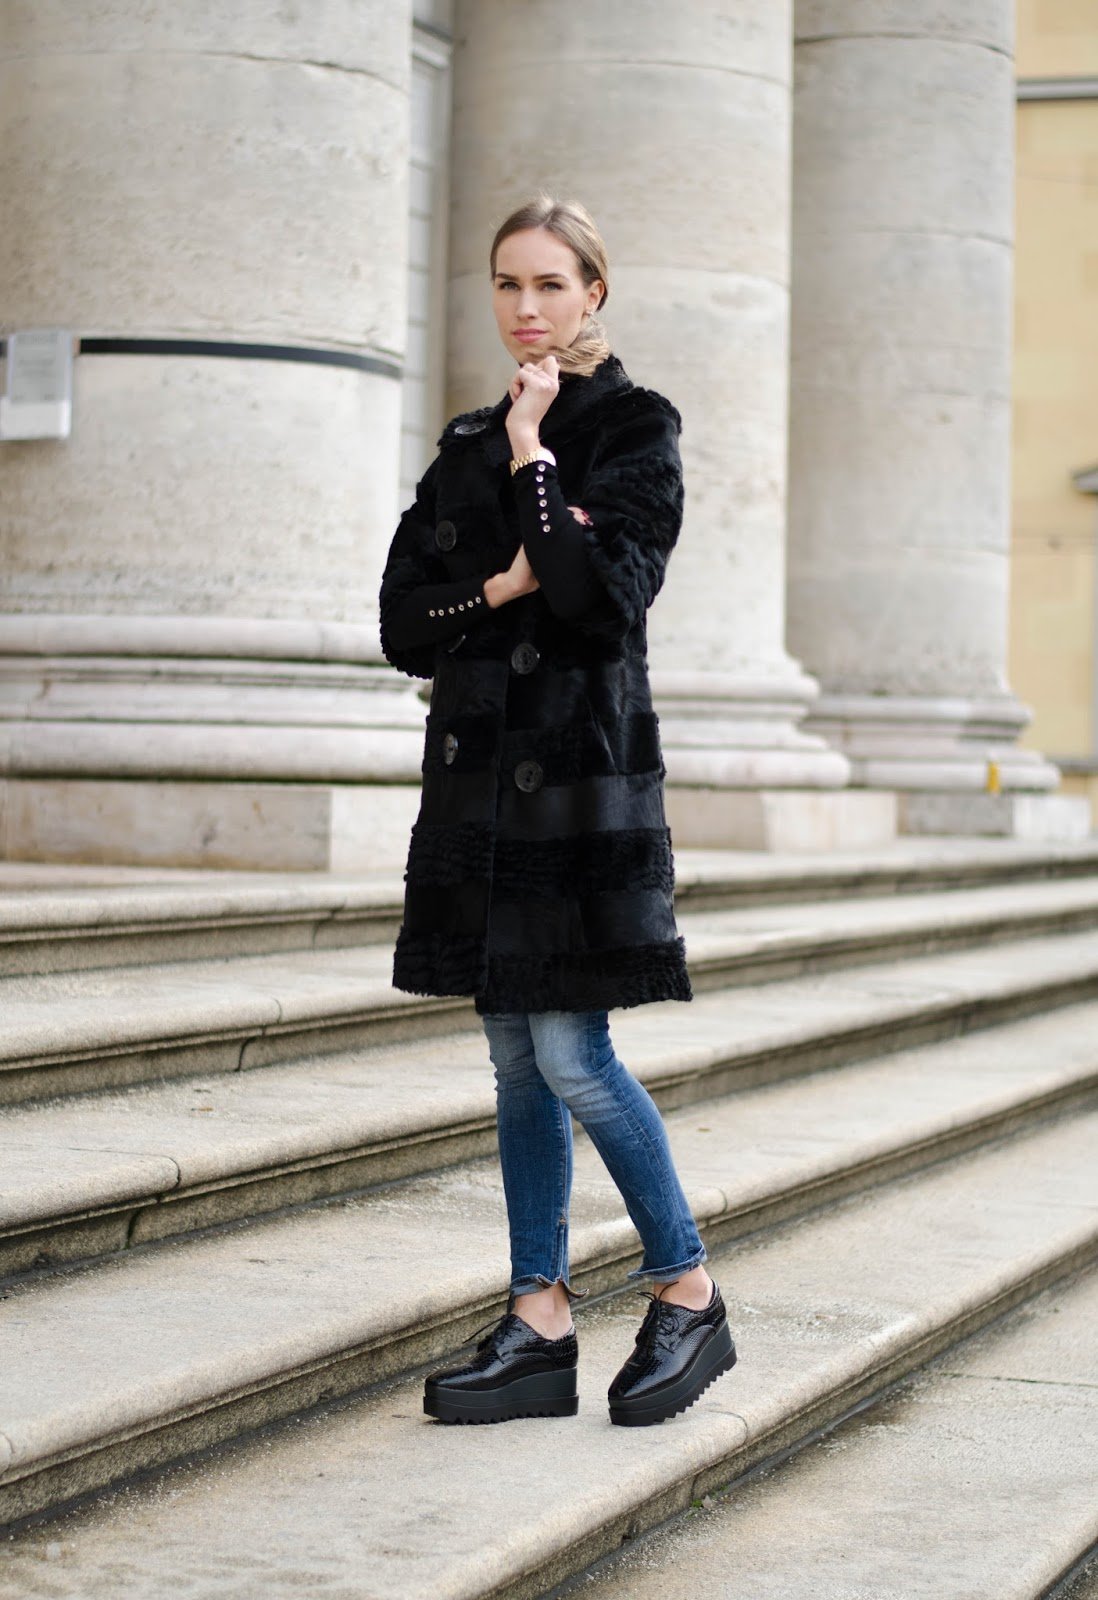 kristjaana mere black fur coat blue jeans platform shoes winter fashion